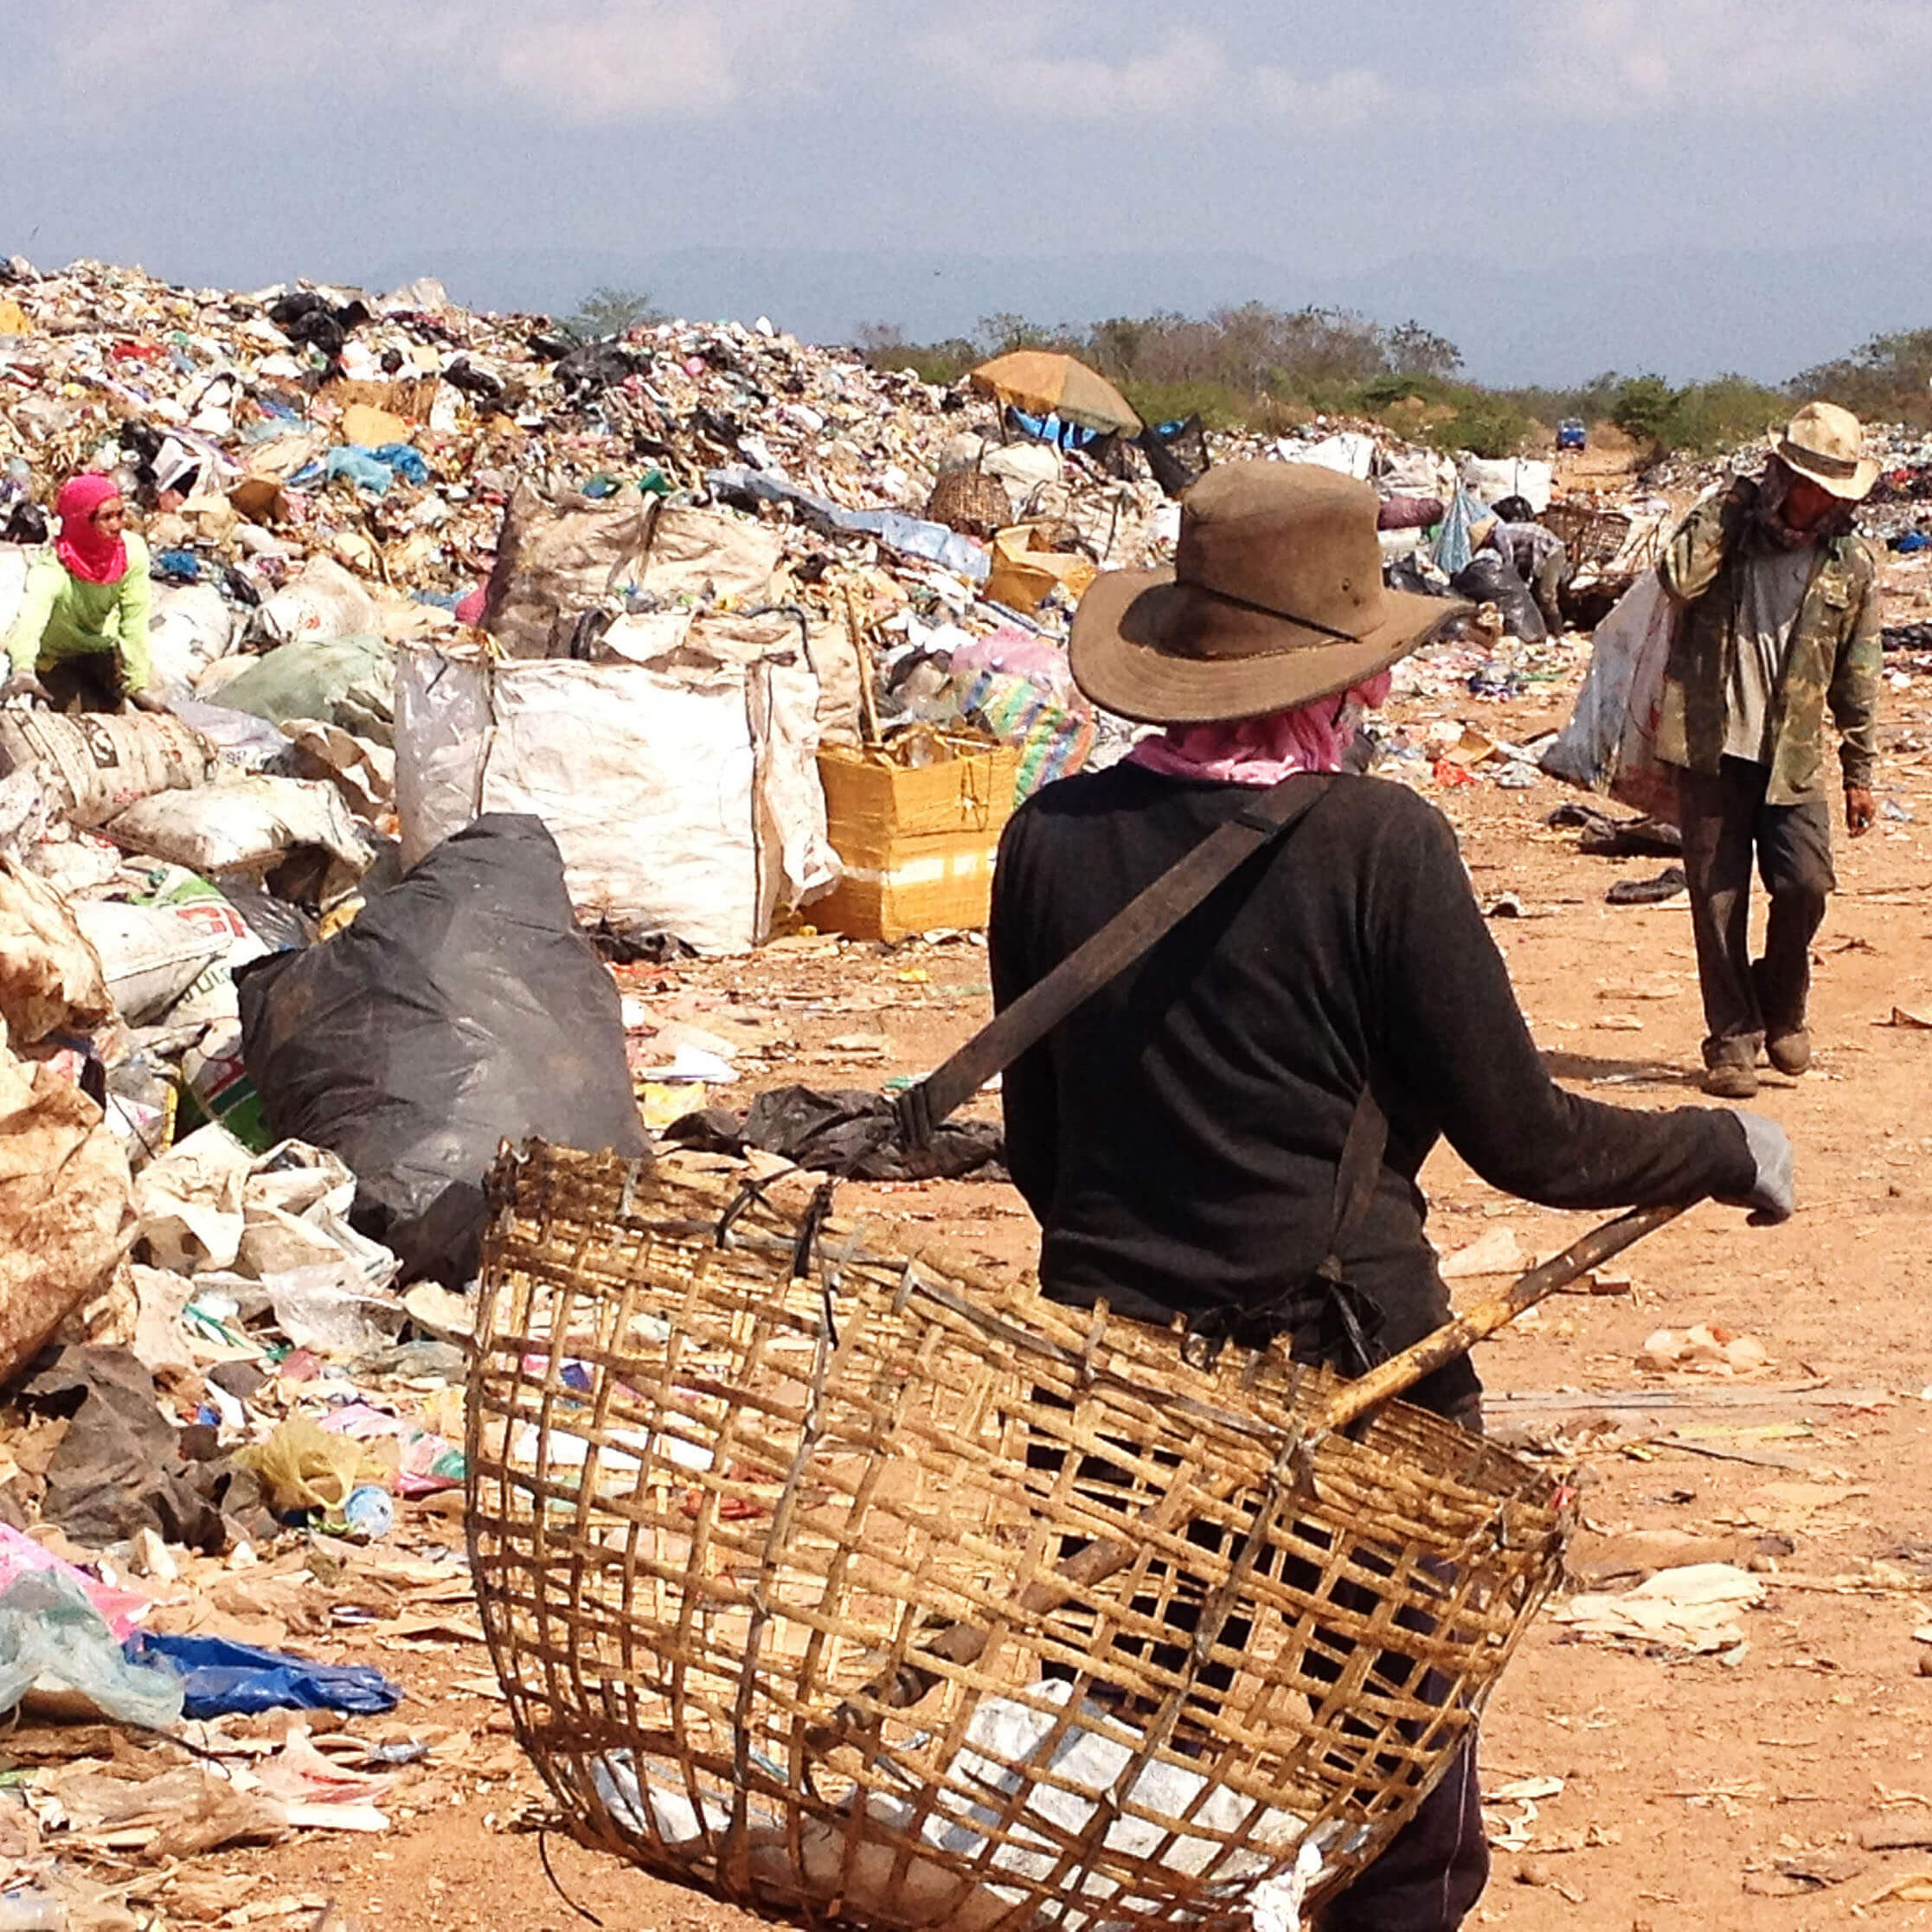 Life on the KM36 rubbish dump is hot and exhausting work.